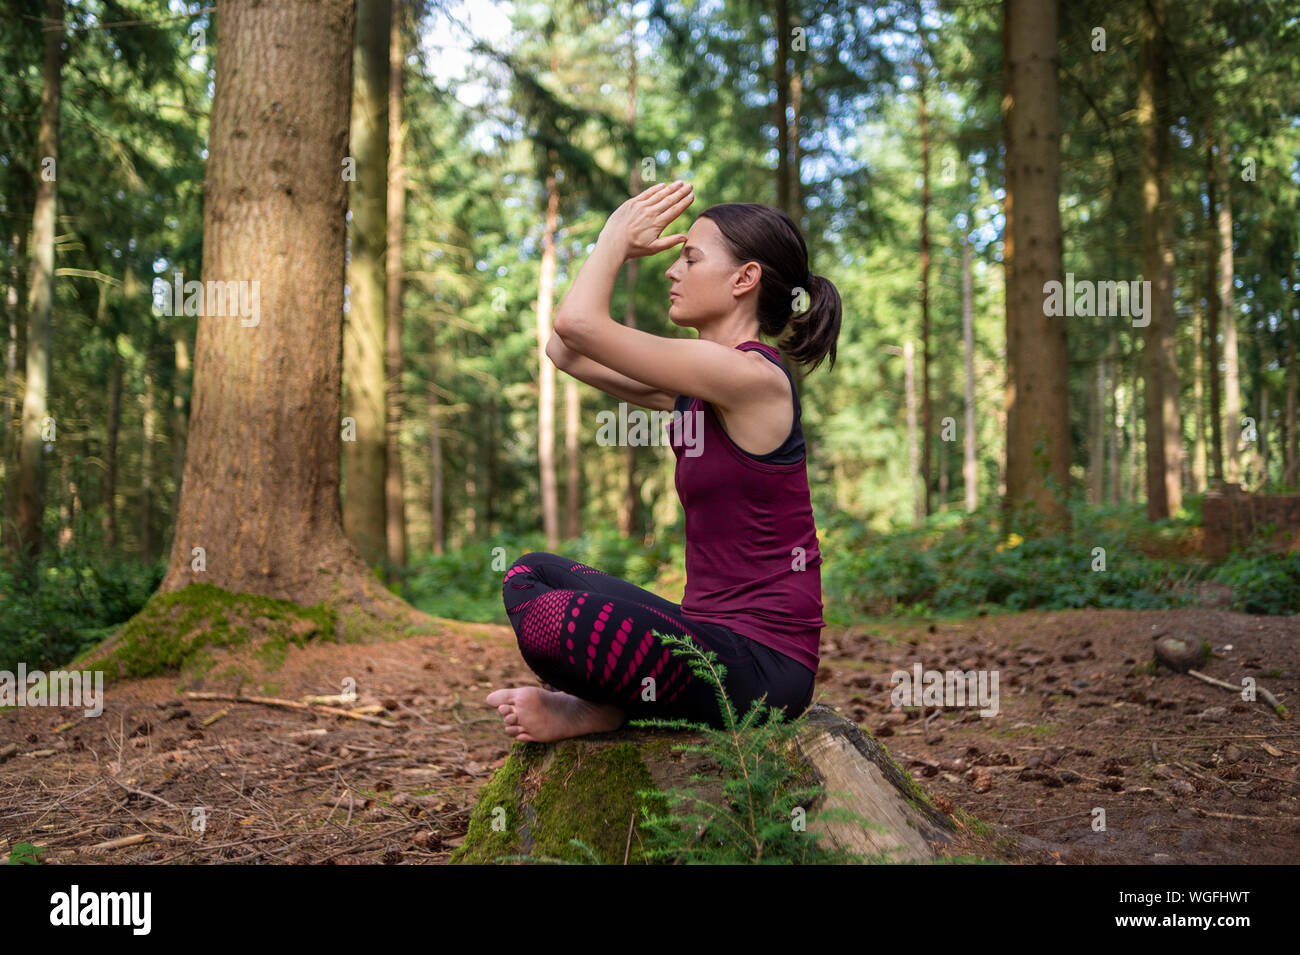 woman sitting on a tree stump in a forest meditating, practicing yoga. Stock Photo